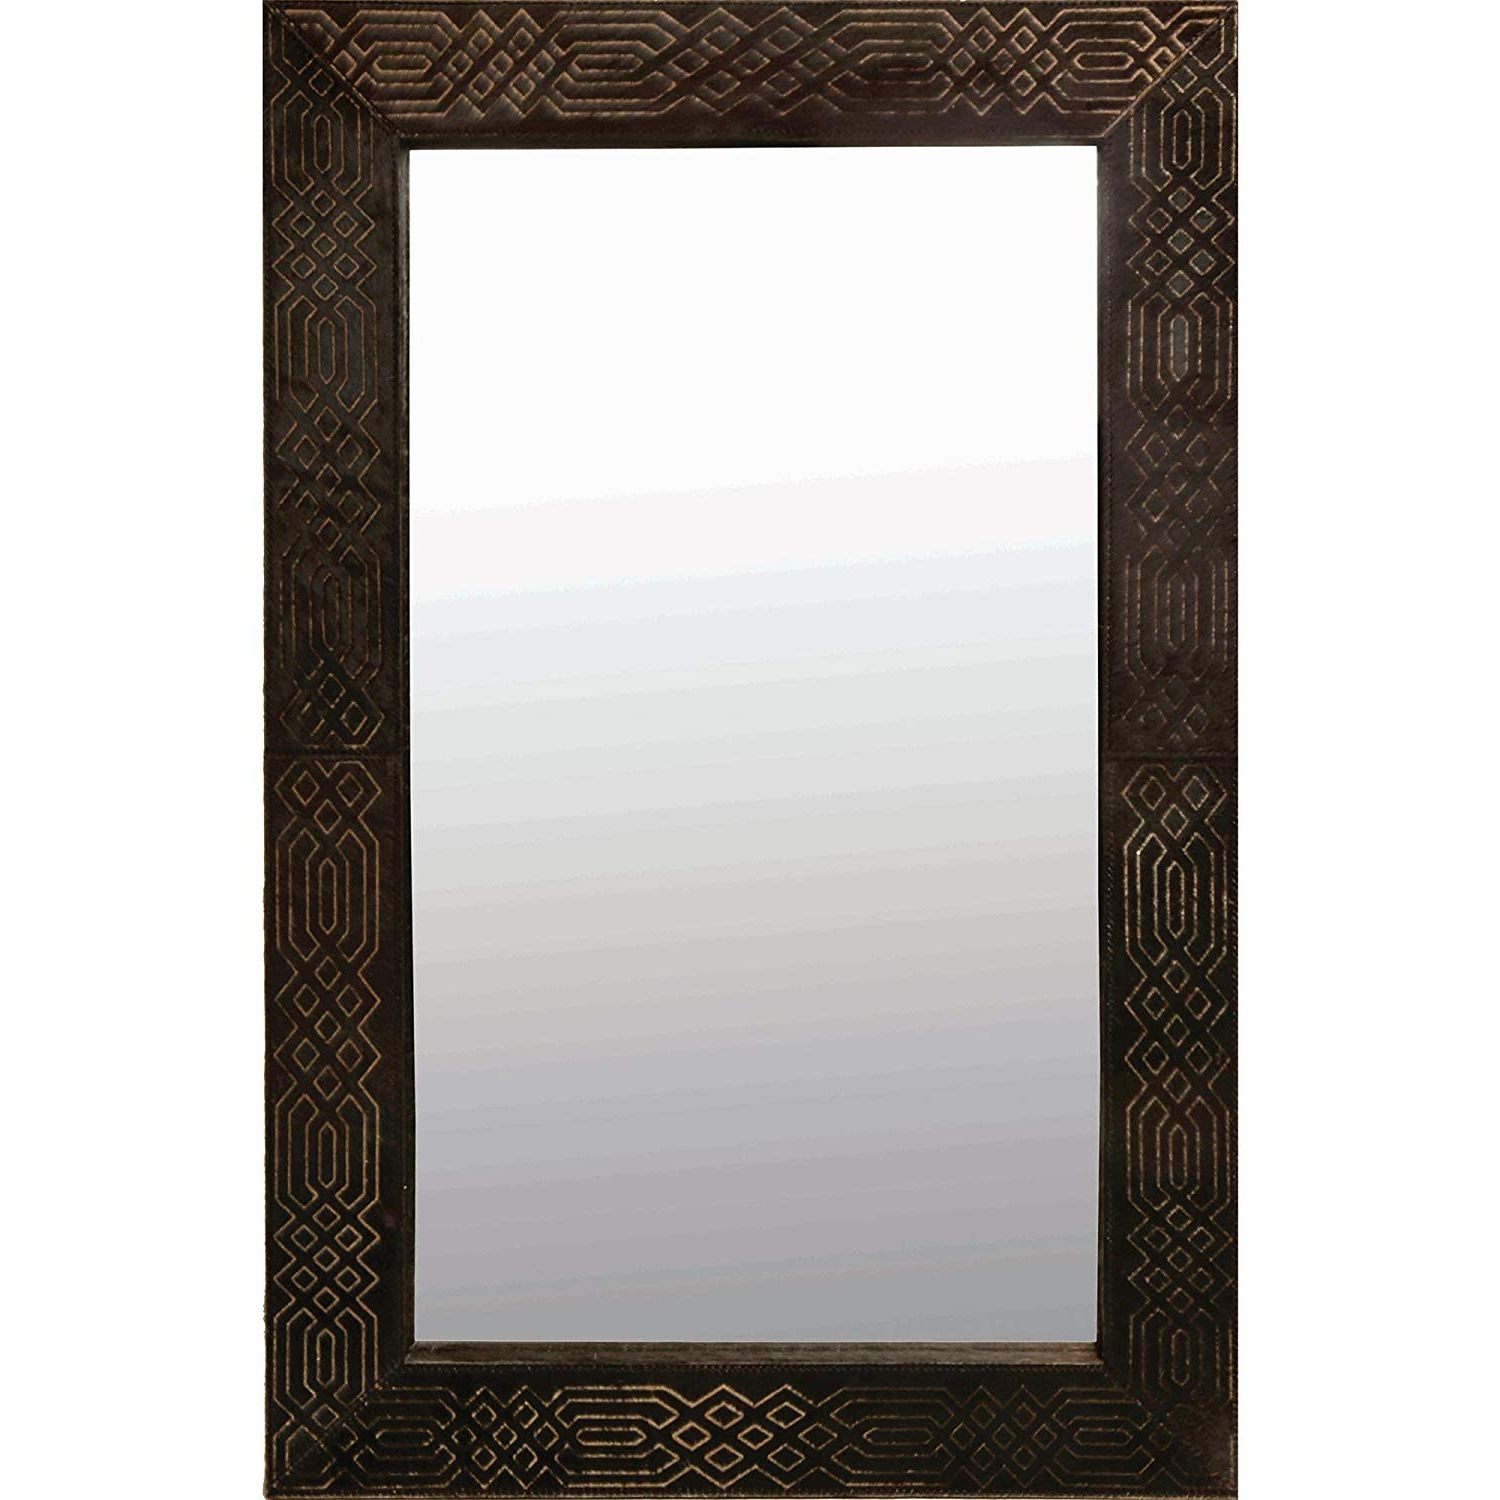 Amazon: Ren Wil Cassini Wall Mirror: Home & Kitchen Inside Well Liked Leather Framed Wall Mirrors (View 8 of 20)